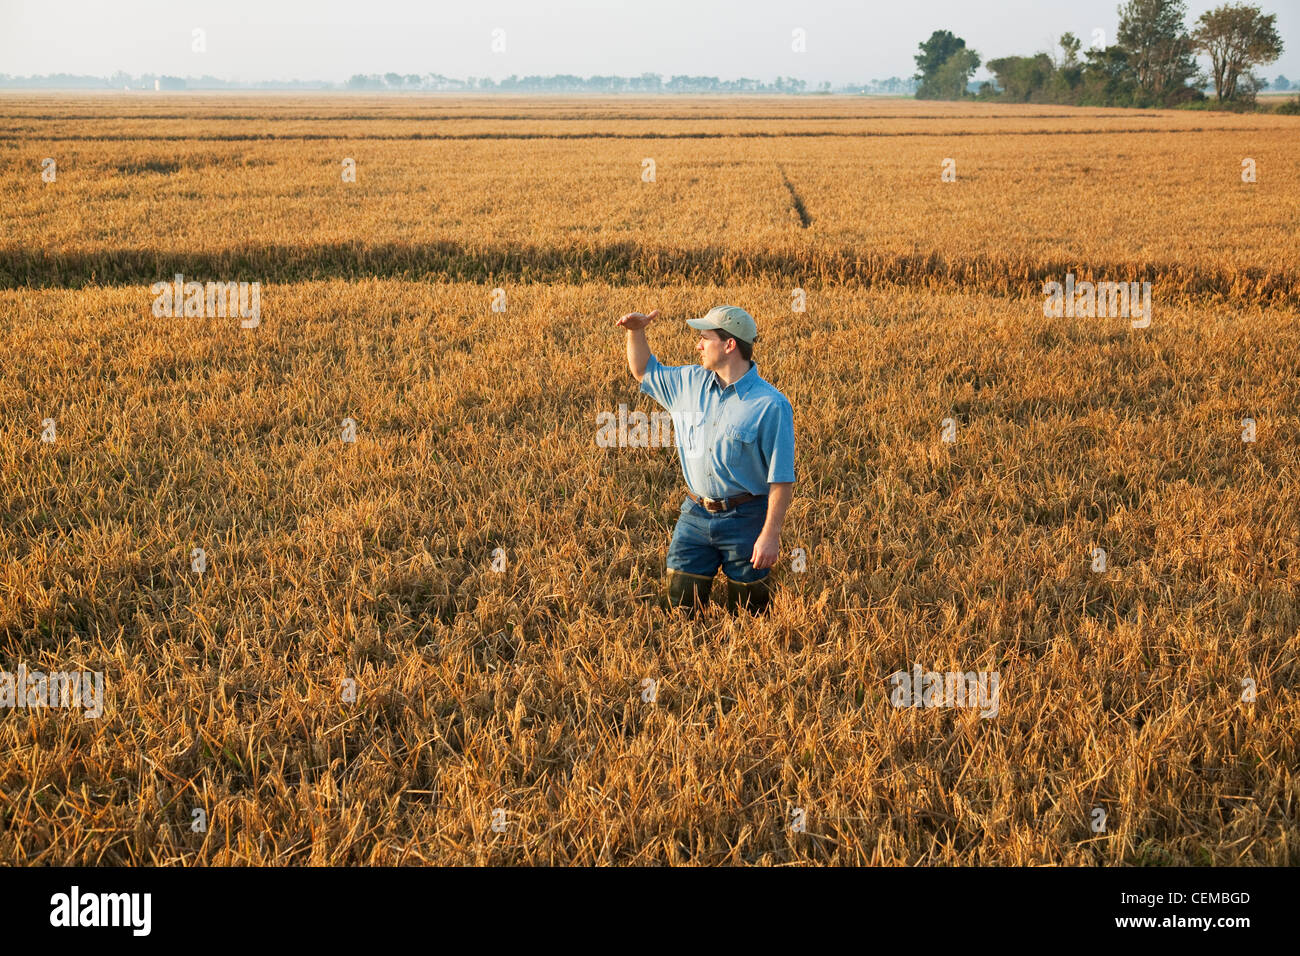 A farmer (grower) standing in his field inspects his nearly mature rice crop in order to determine when the harvest - Stock Image